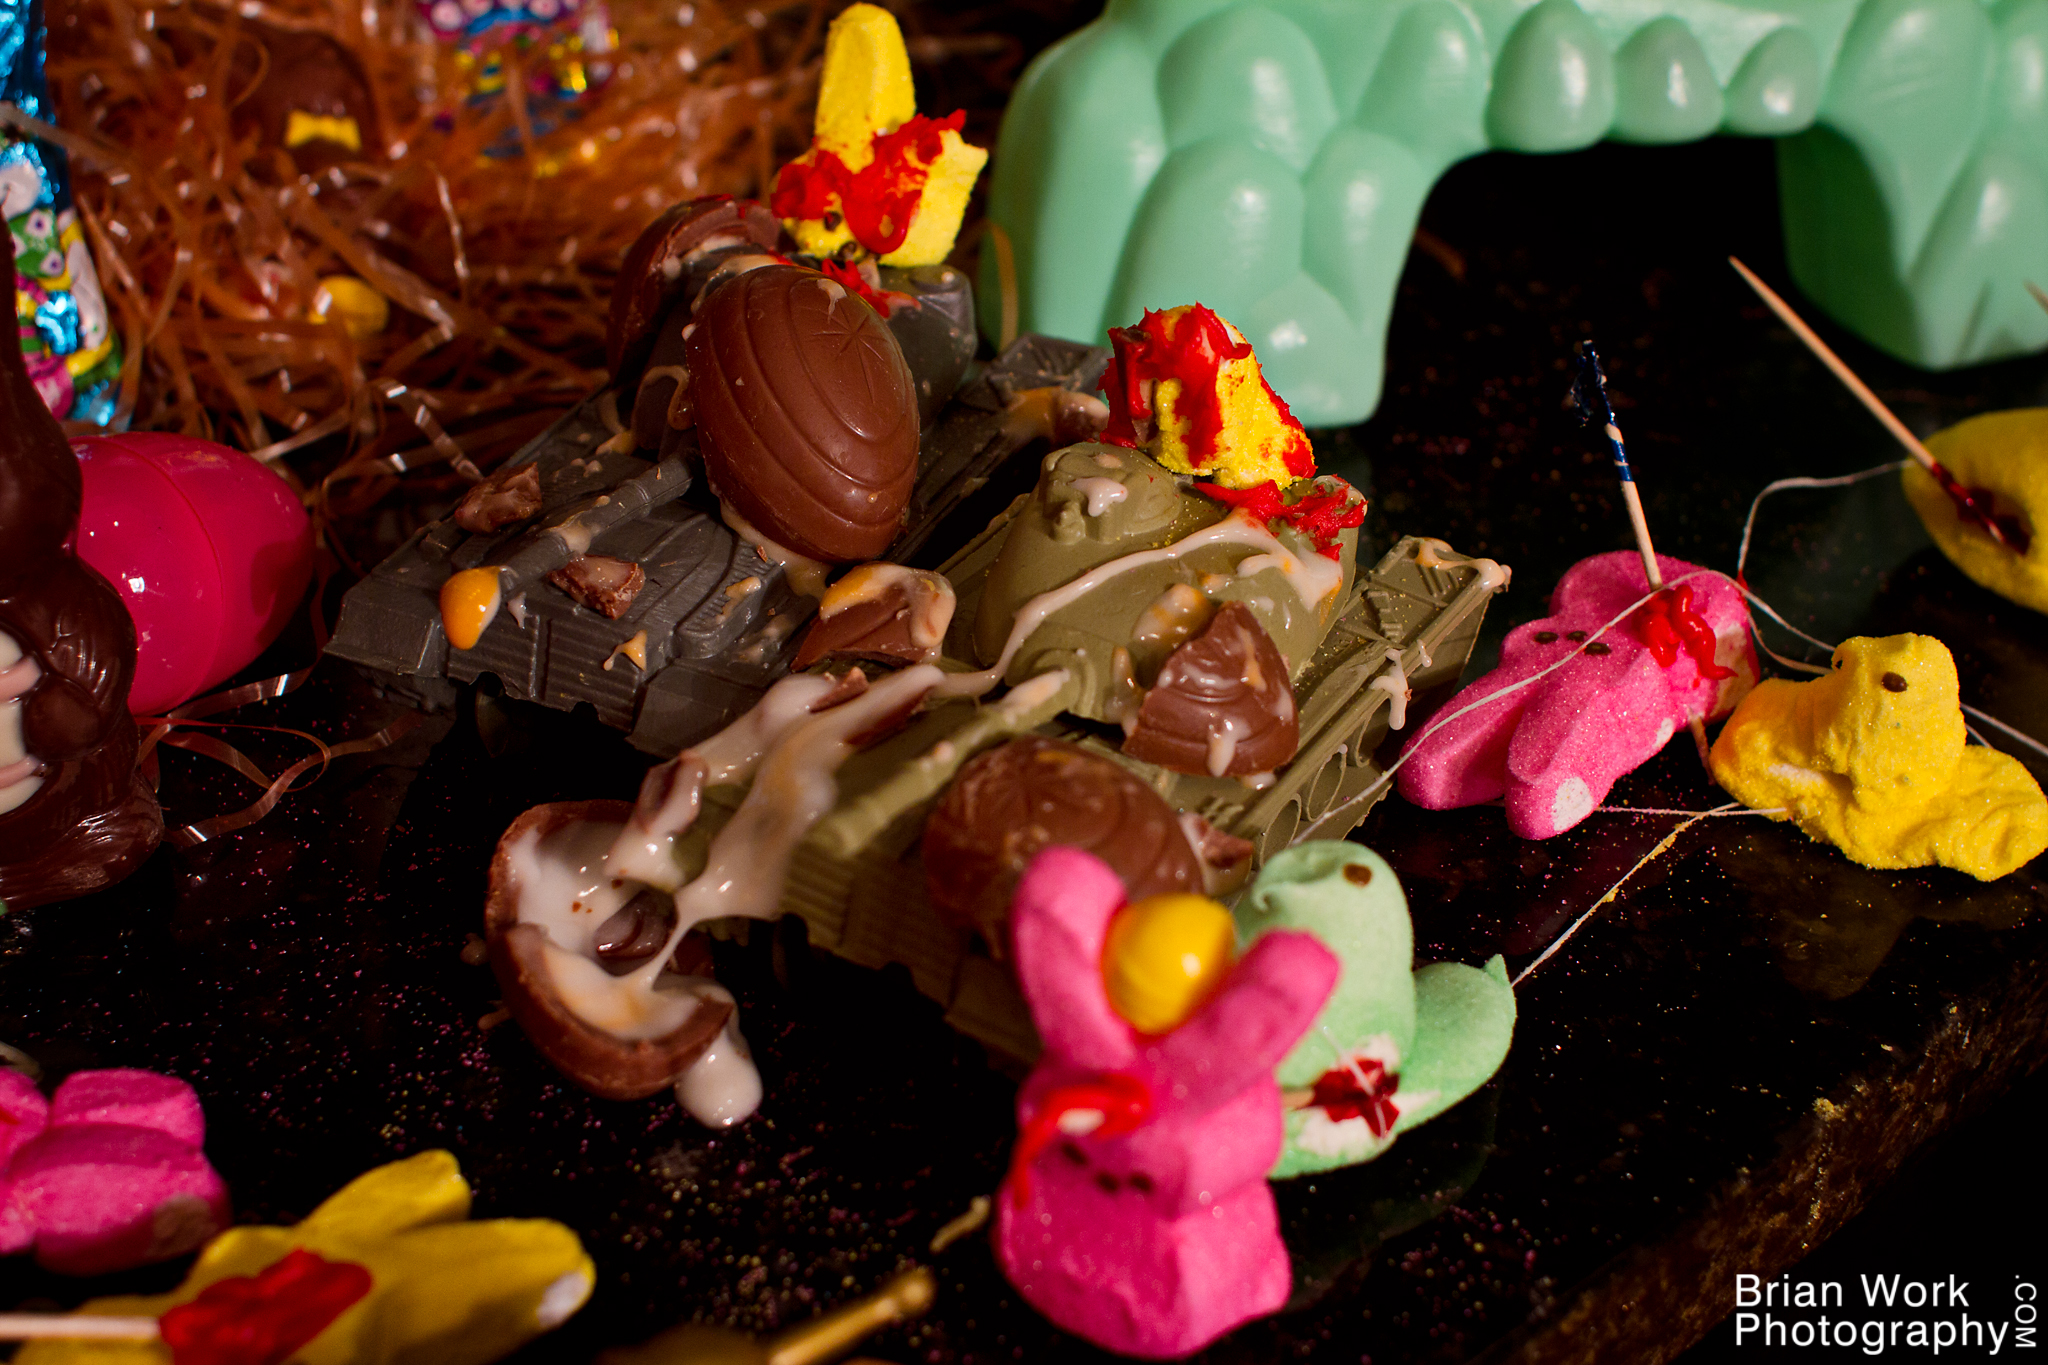 <h5>The delicious creme eggs hurtled through the air and destroyed the bunnies' tank force with a loud splat. Before he even knew what was happening, Cannoneer Bunnson had been impaled on the spear of a brave member of the Magnificent Four.</h5>